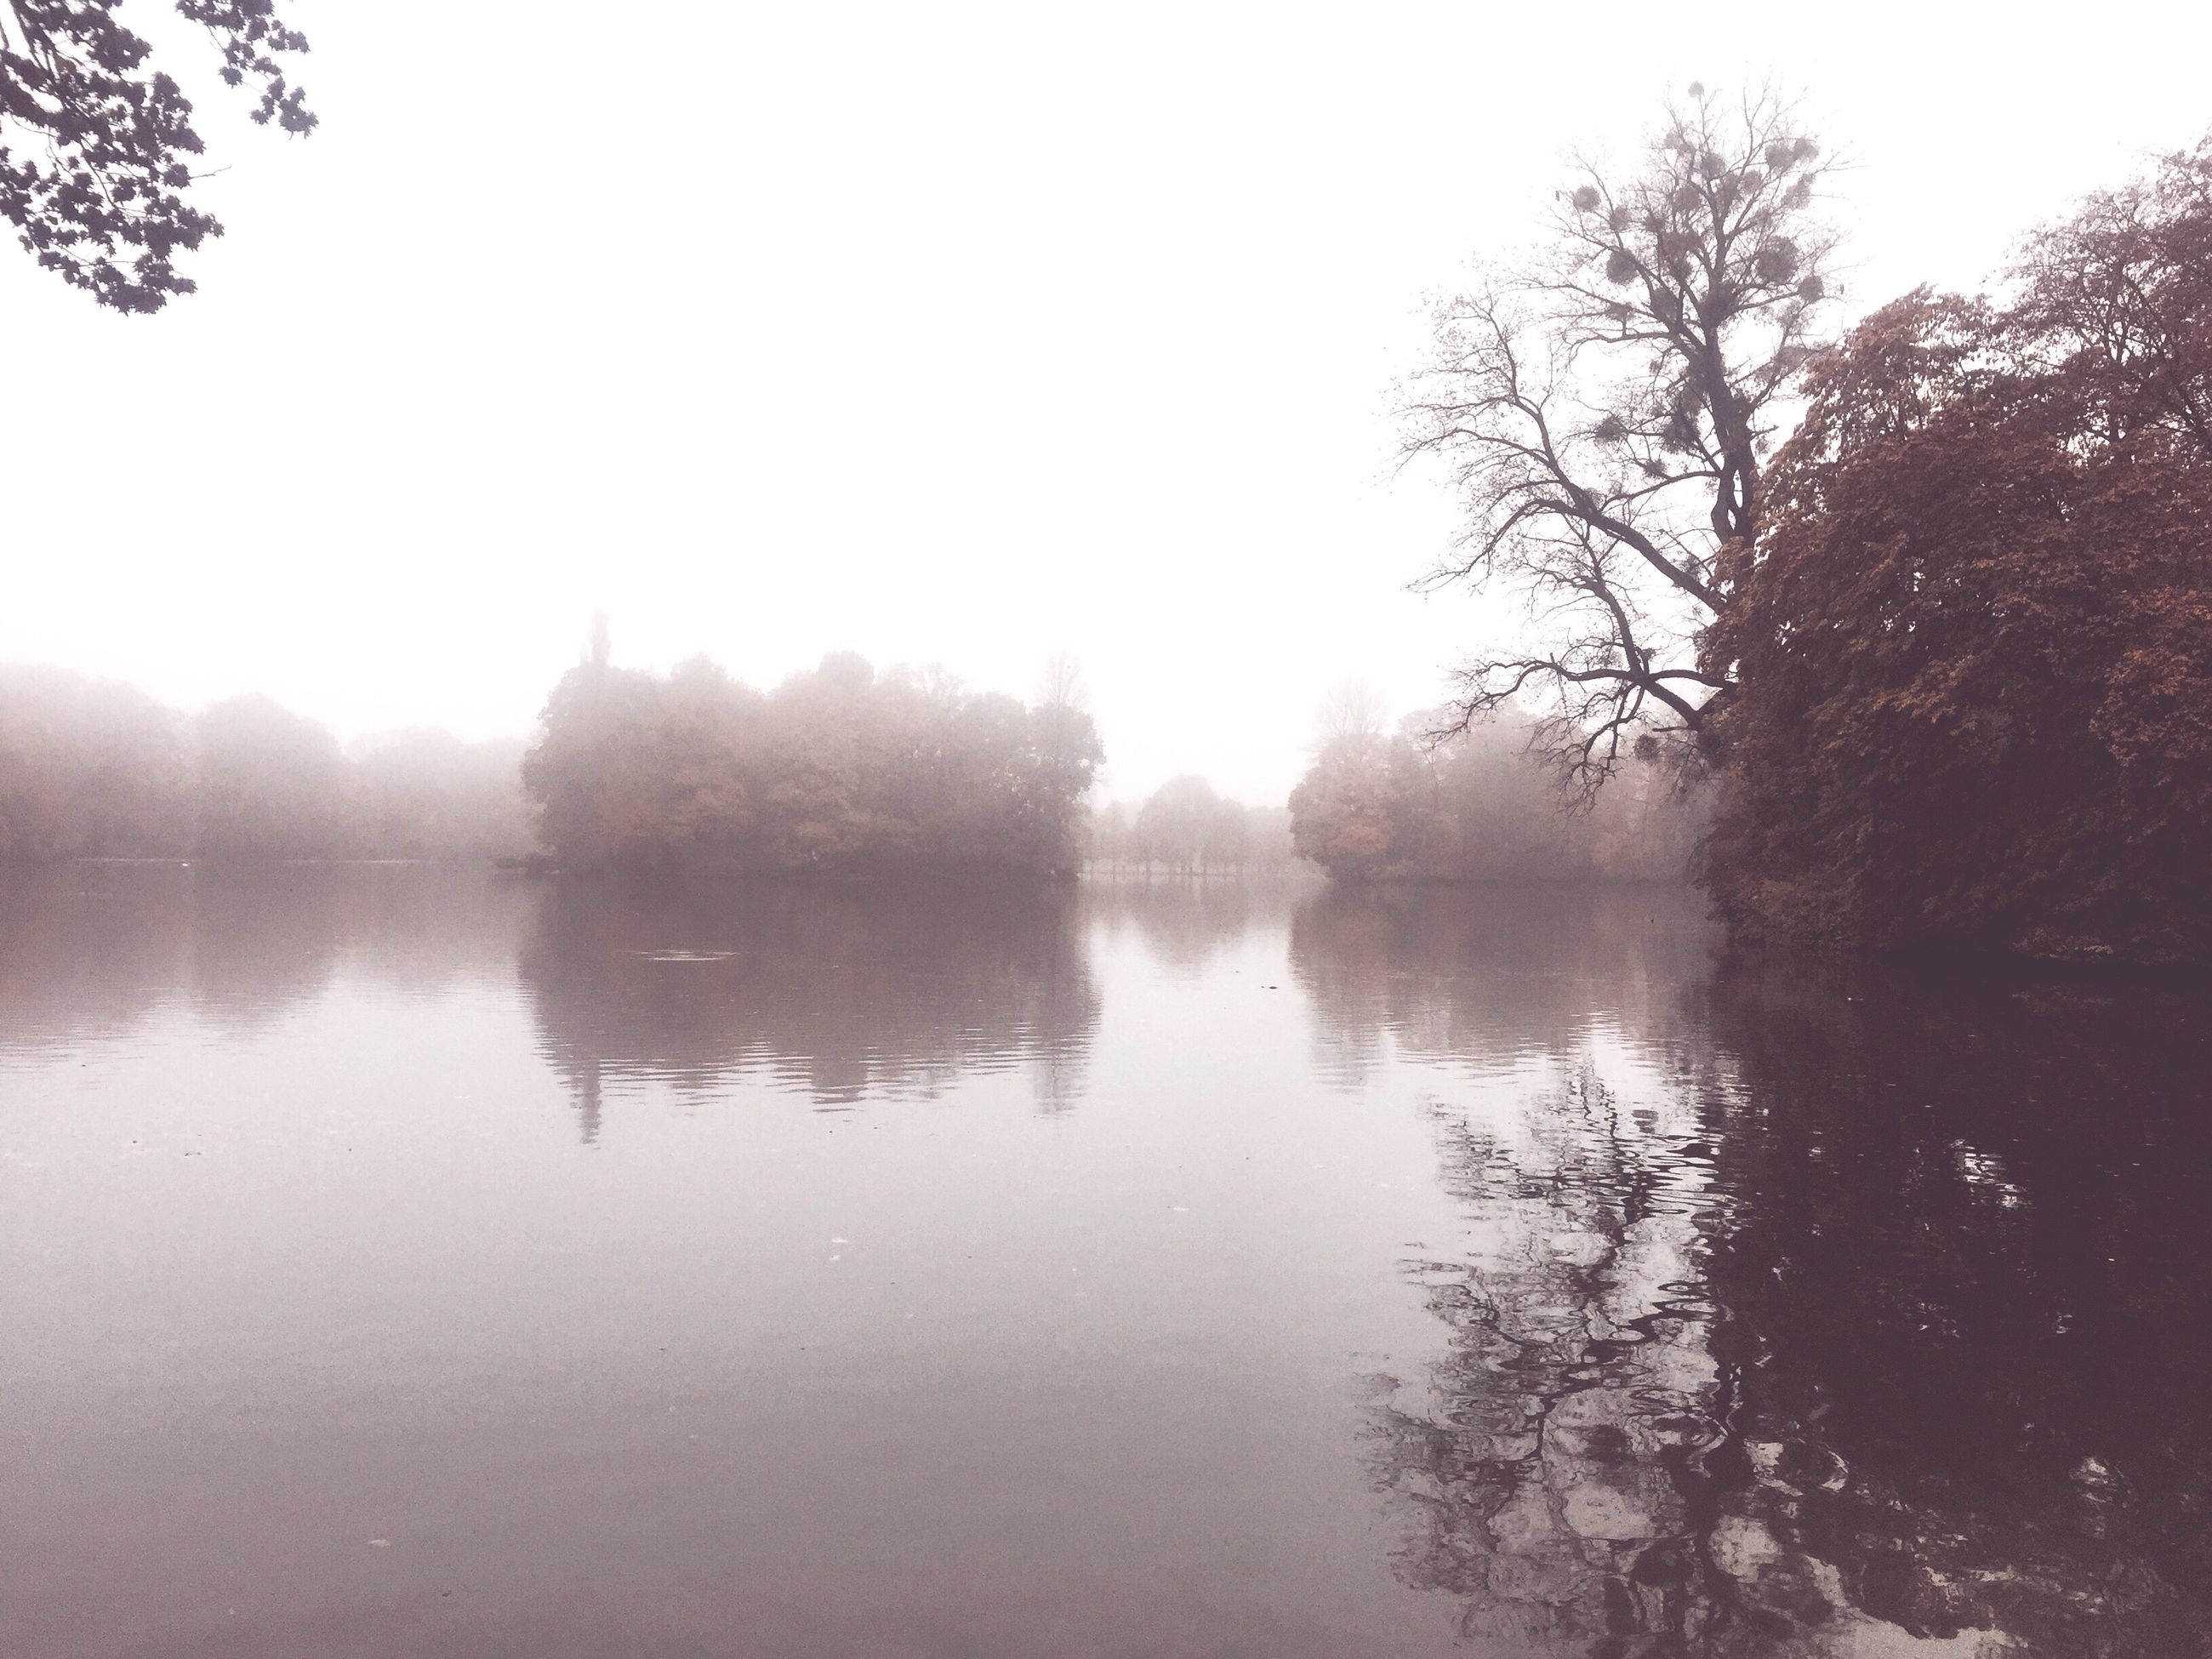 reflection, nature, tree, water, lake, outdoors, sky, tranquility, tranquil scene, scenics, idyllic, no people, beauty in nature, day, animal themes, fog, animals in the wild